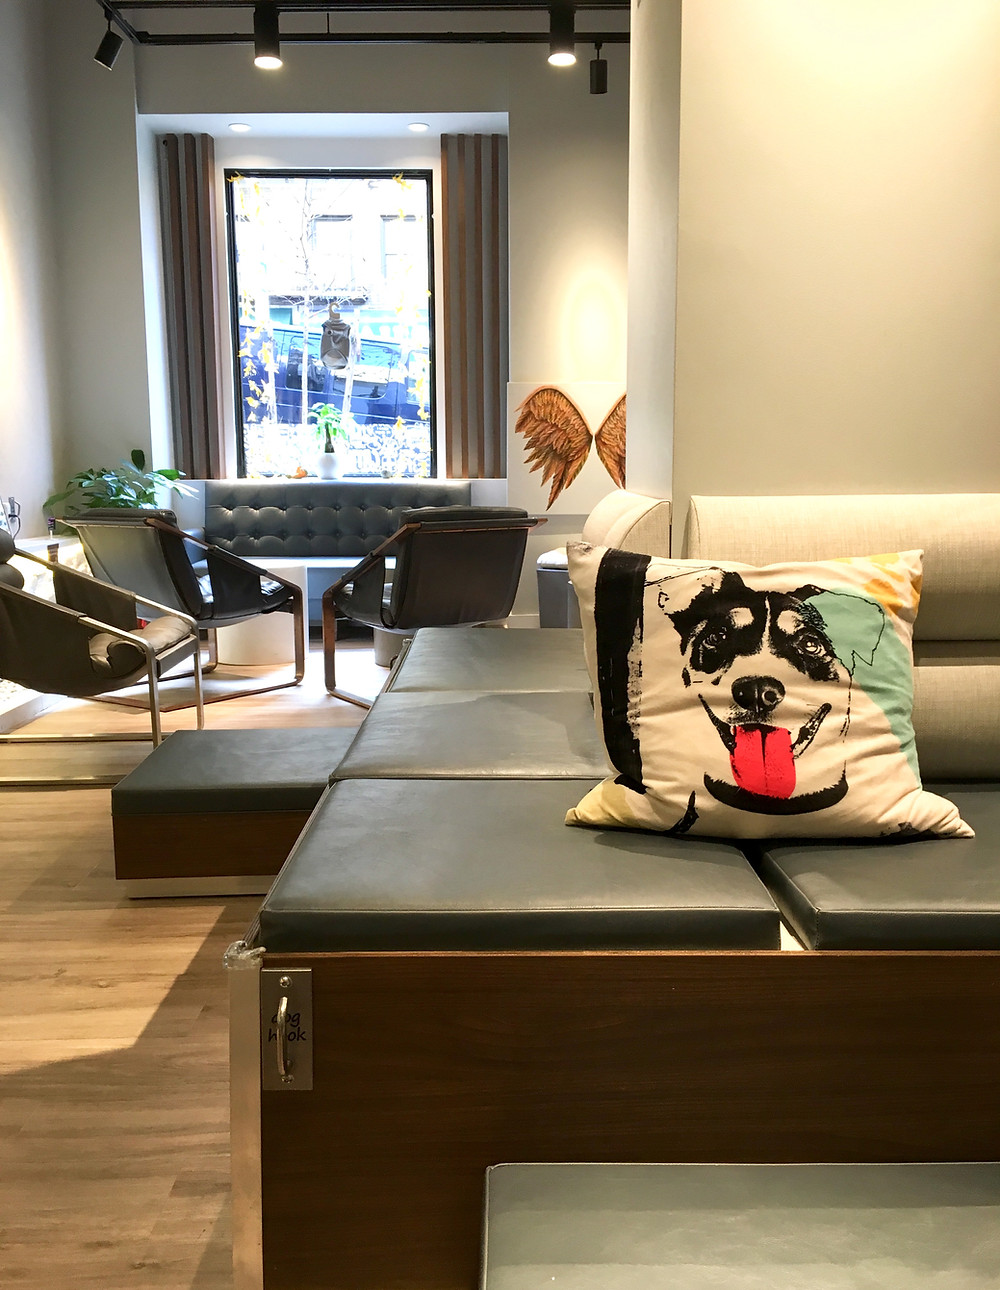 Cafe Bark, a new dog cafe in Washington Heights